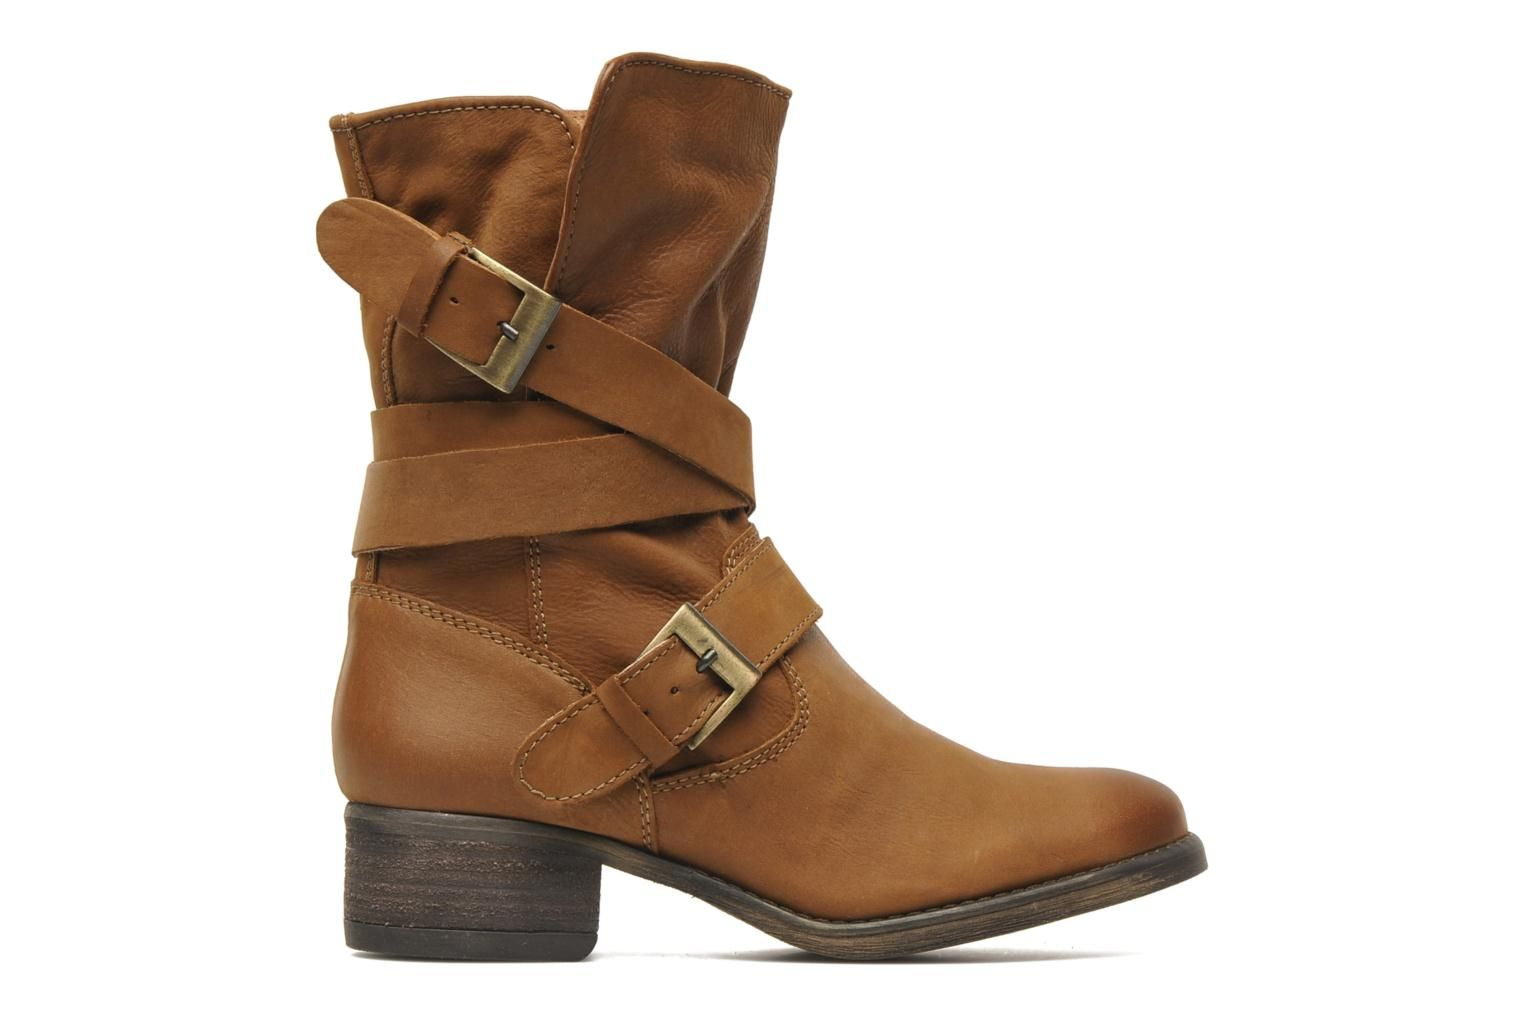 Insatisfecho Contabilidad muestra  BREWZER by Steve Madden (Black) | Sarenza UK | Your Ankle boots BREWZER Steve  Madden delivered for Free | Boots, Steve madden, Ankle boots